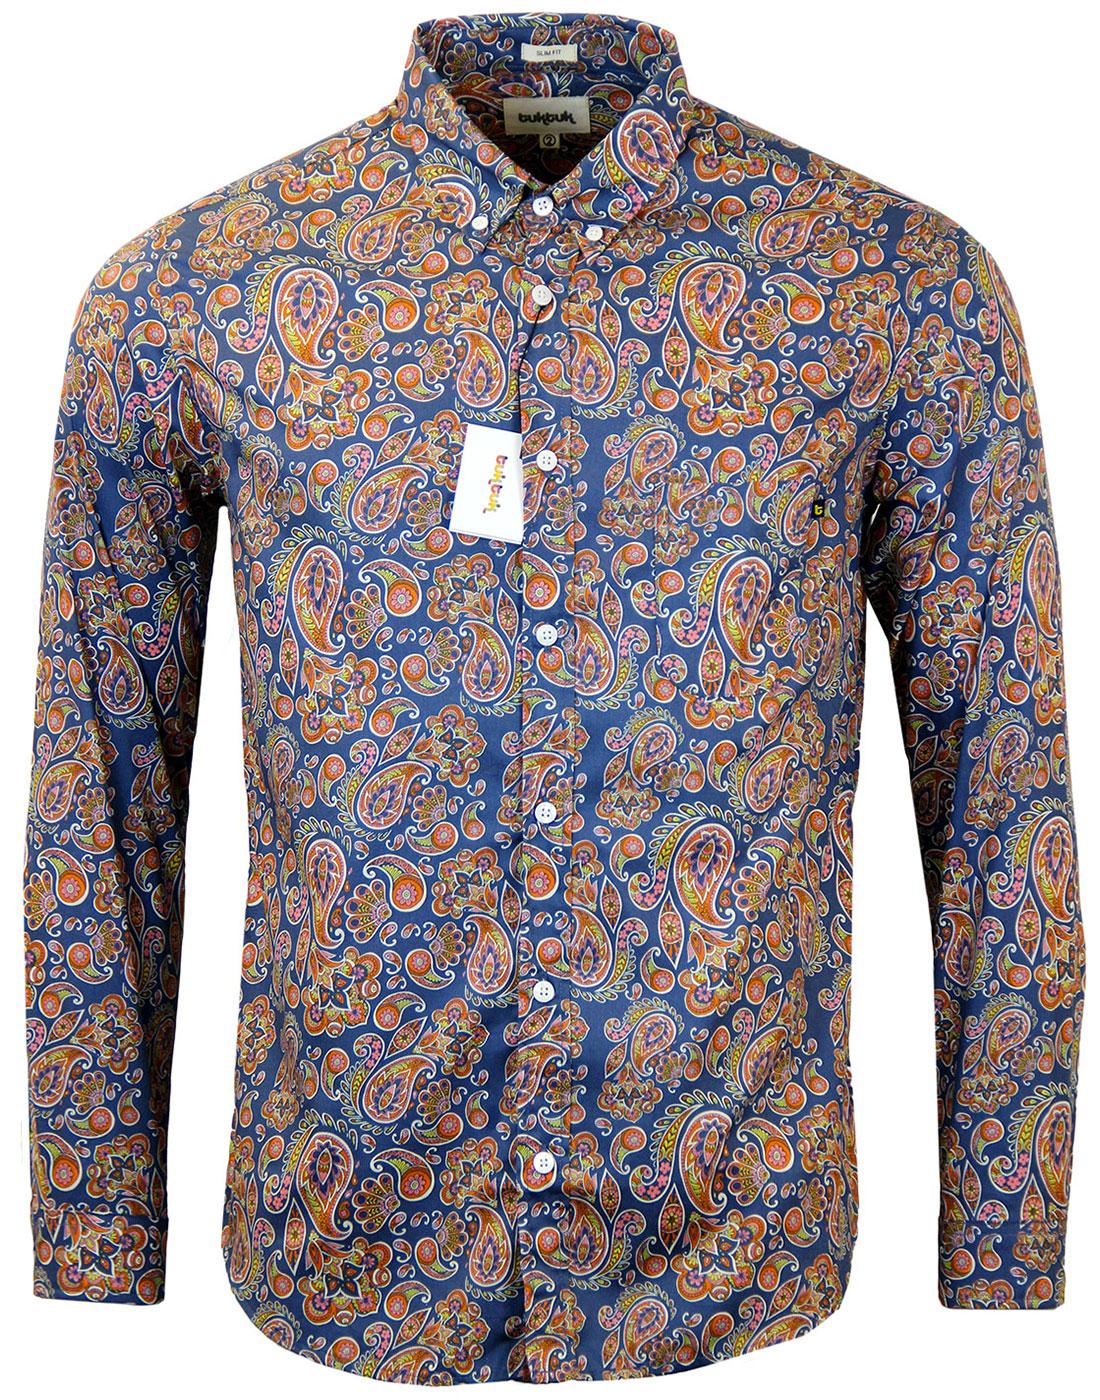 TUKTUK Retro Mod Floral Psychedelic Paisley Shirt